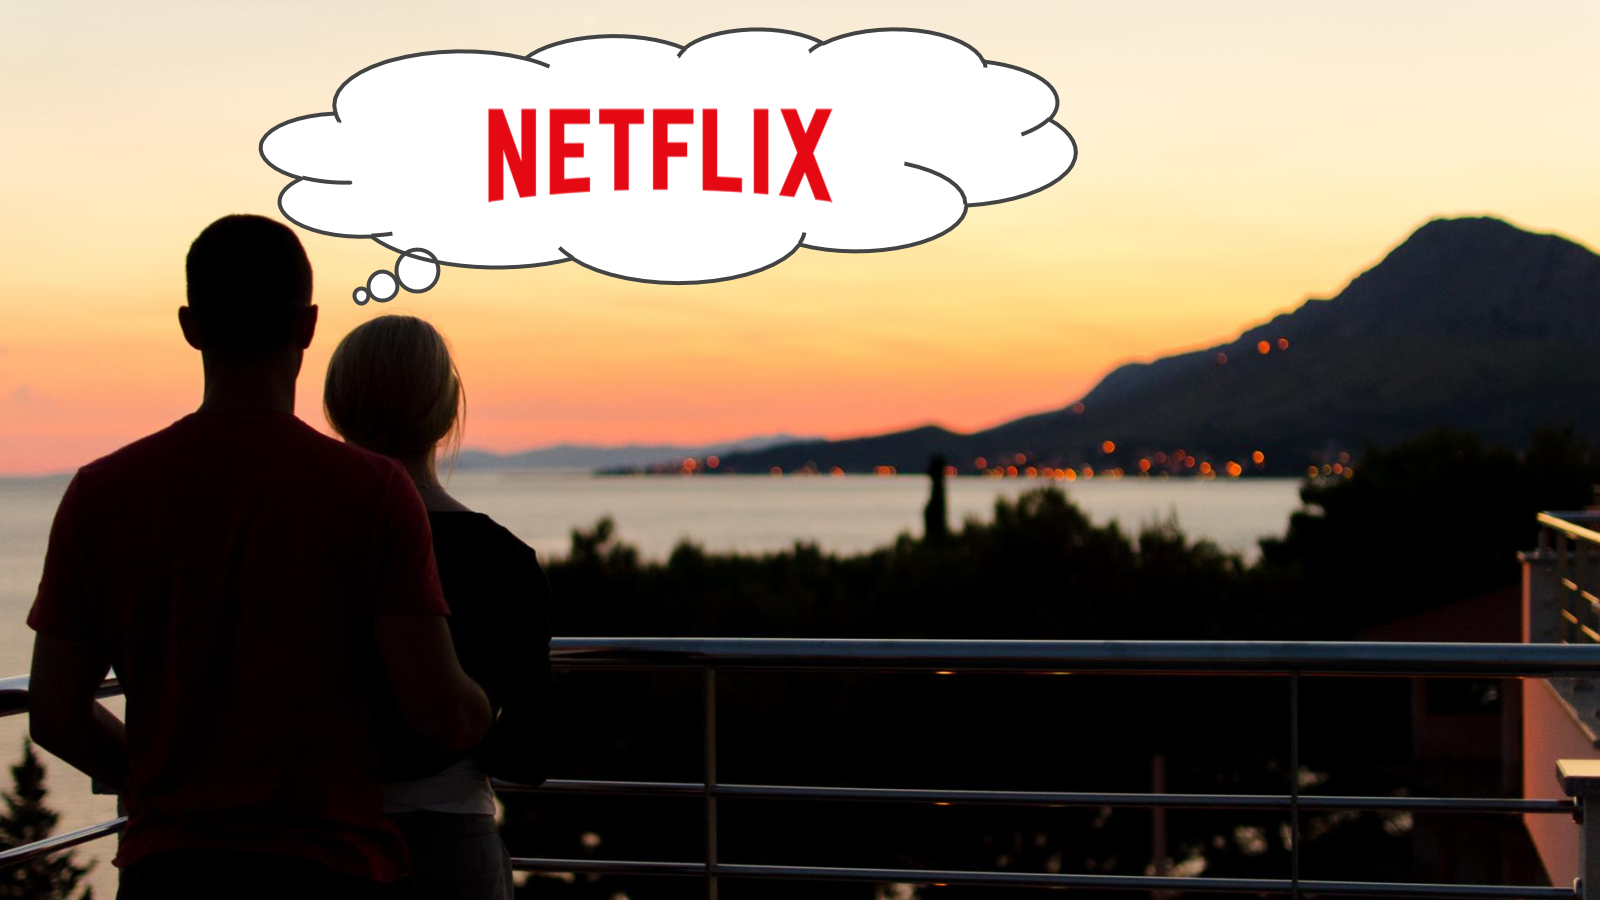 12 things to do with your S O  besides watch Netflix when you have